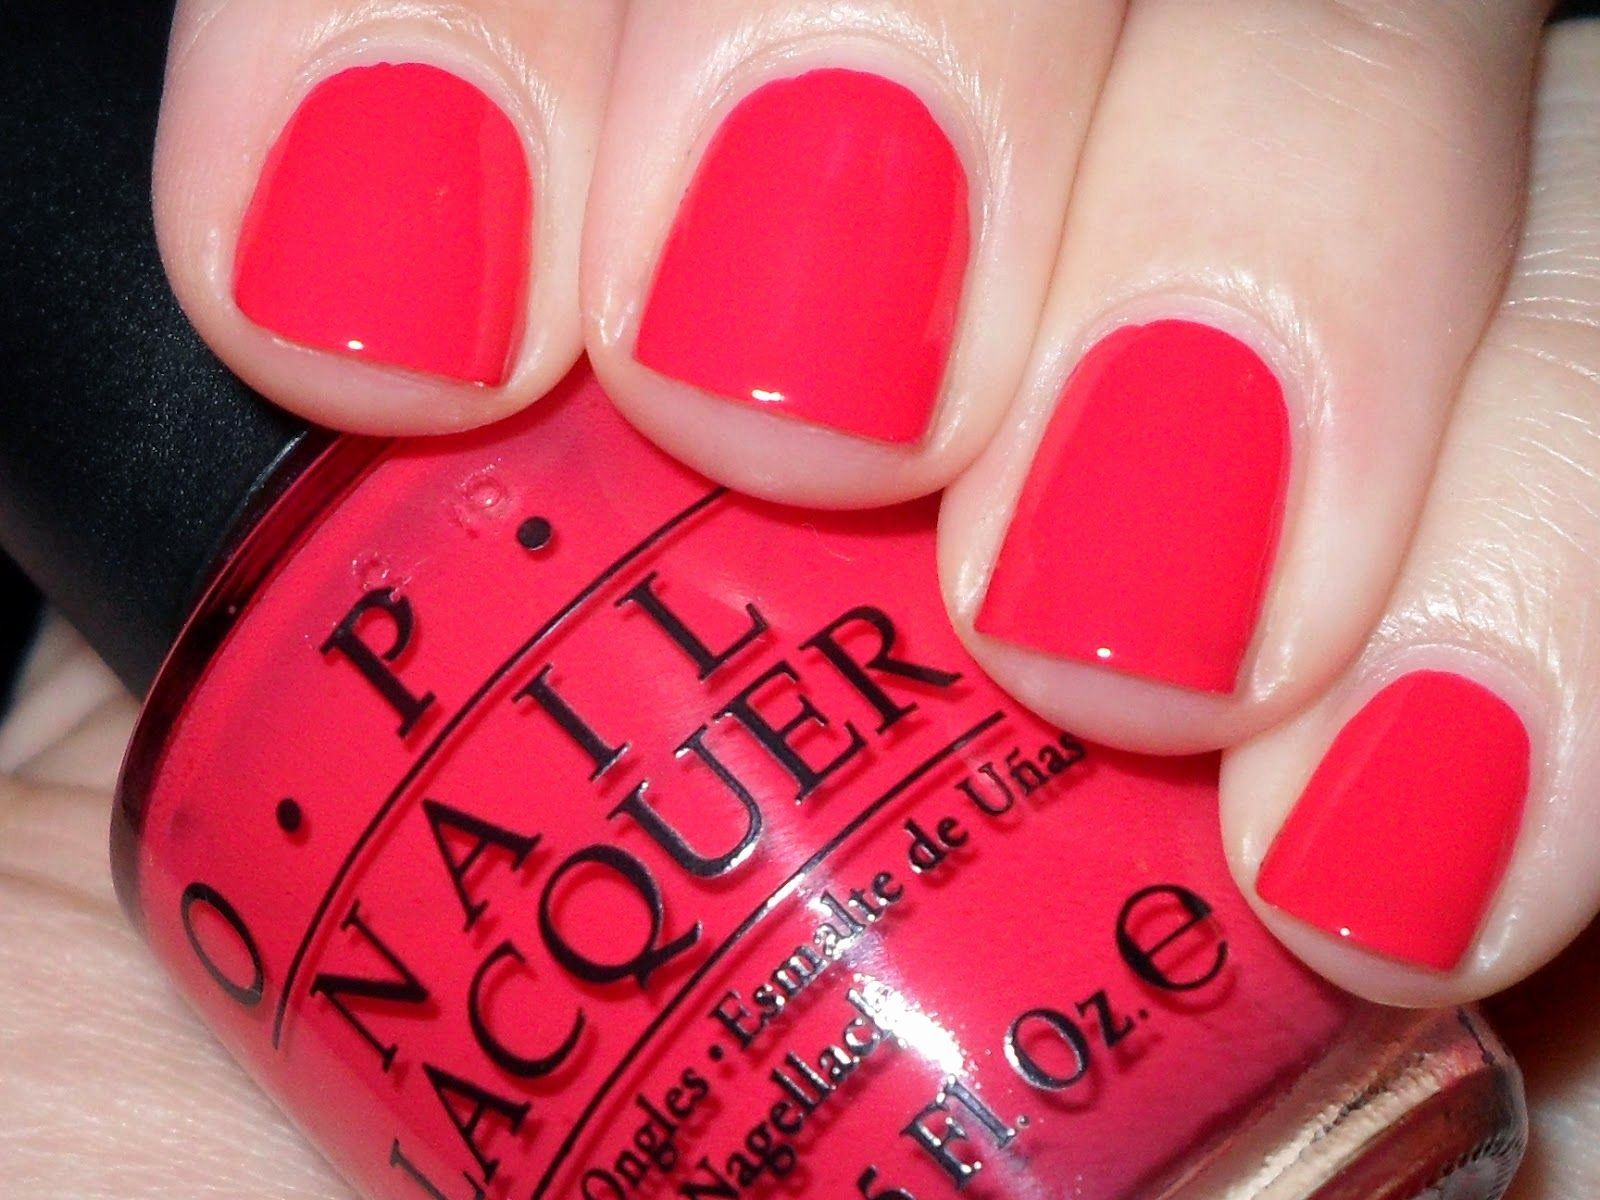 Cajun Shrimp Nail Polish Lovely Polished Claws Up Opi Cajun Shrimp